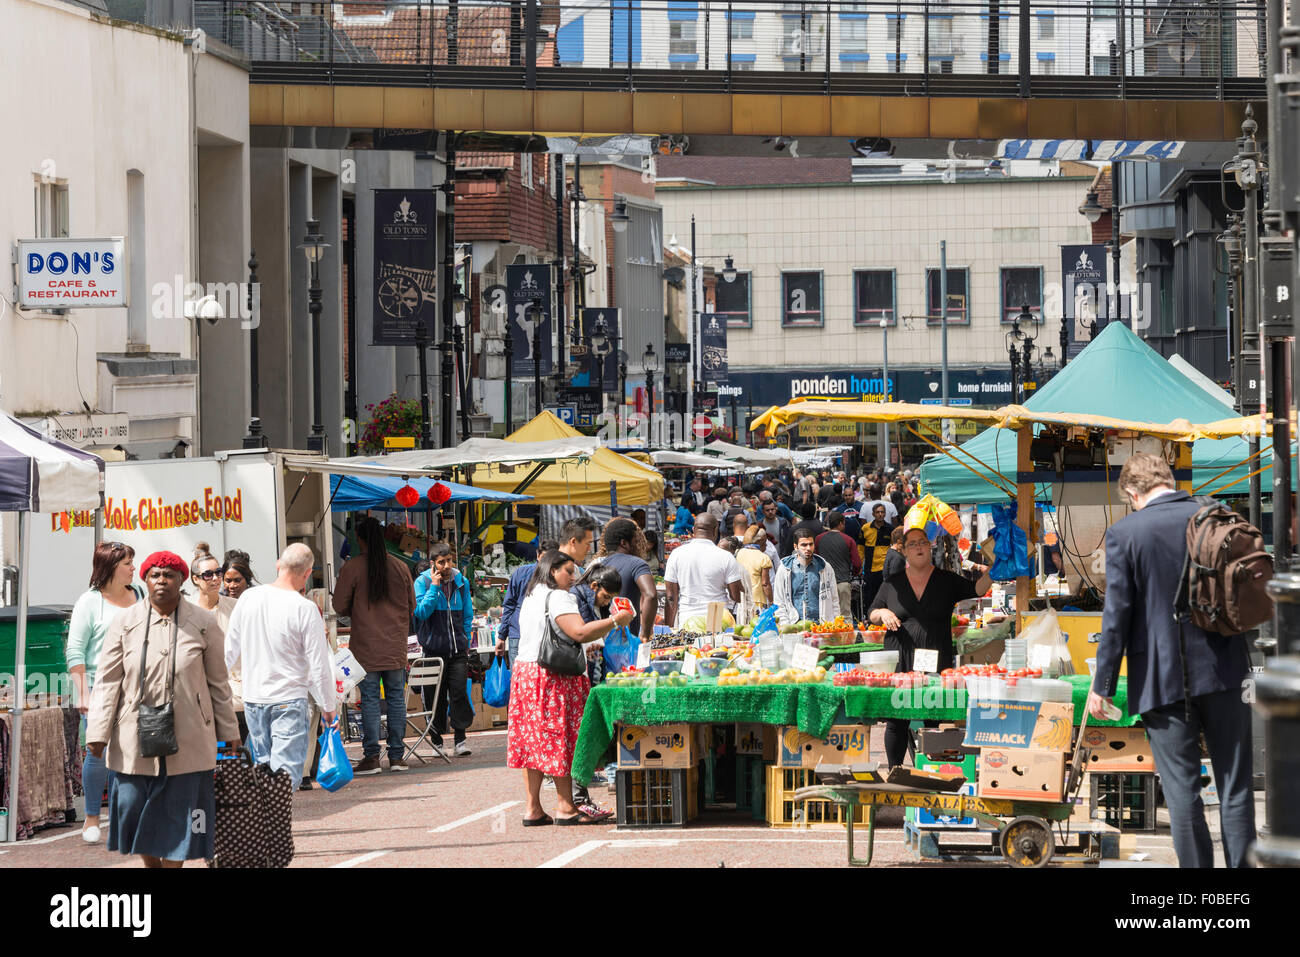 Surrey Street Market stalls, Surrey Street, Croydon, London Borough of Croydon, Greater London, England, United - Stock Image